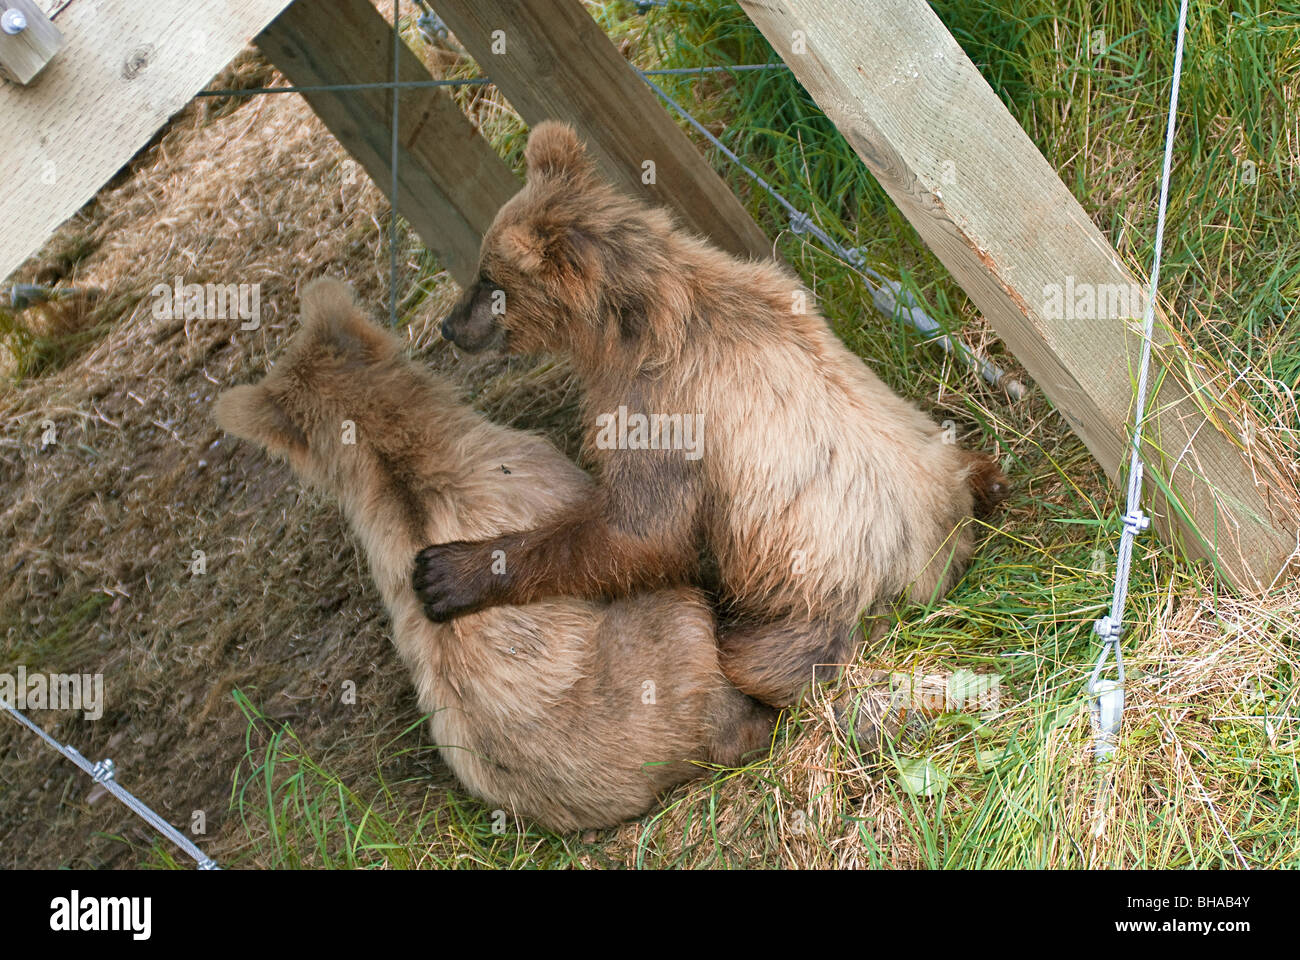 A yearling brown bear puts its arm around its sibling's shoulder, Brooks Falls, Katmai National Park, Southwest - Stock Image